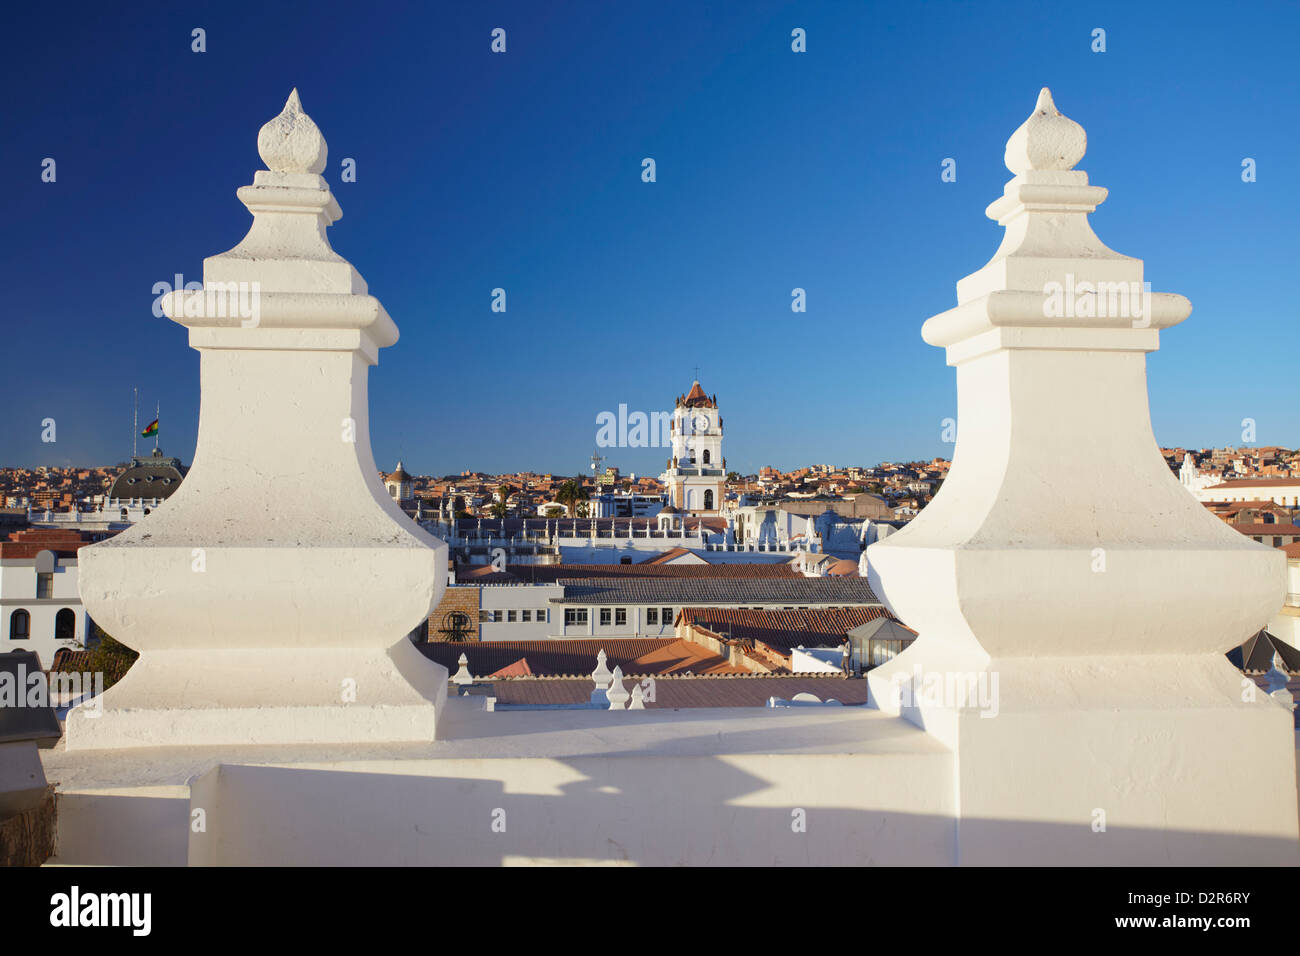 View of Sucre from rooftop of Convento de San Felipe Neri, Sucre, UNESCO World Heritage Site, Bolivia, South America - Stock Image